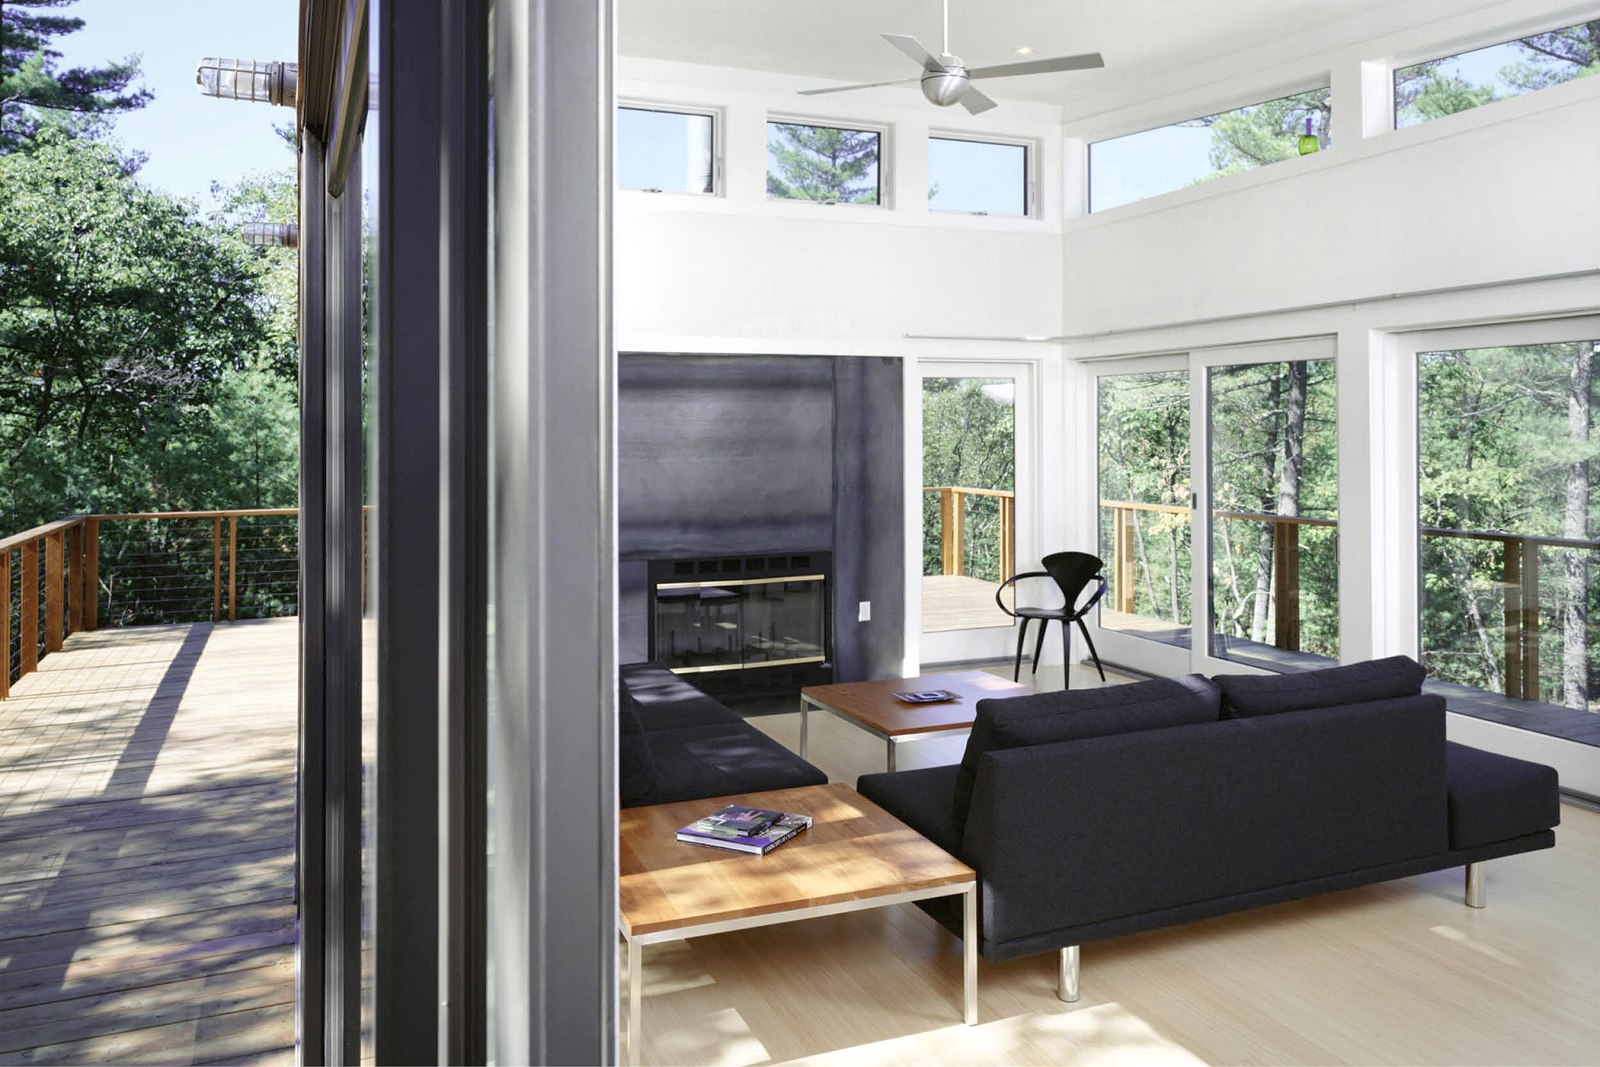 07-res4-resolution-4-architecture-modern-modular-home-prefab-house-mountain-retreat-interior-exterior.jpg